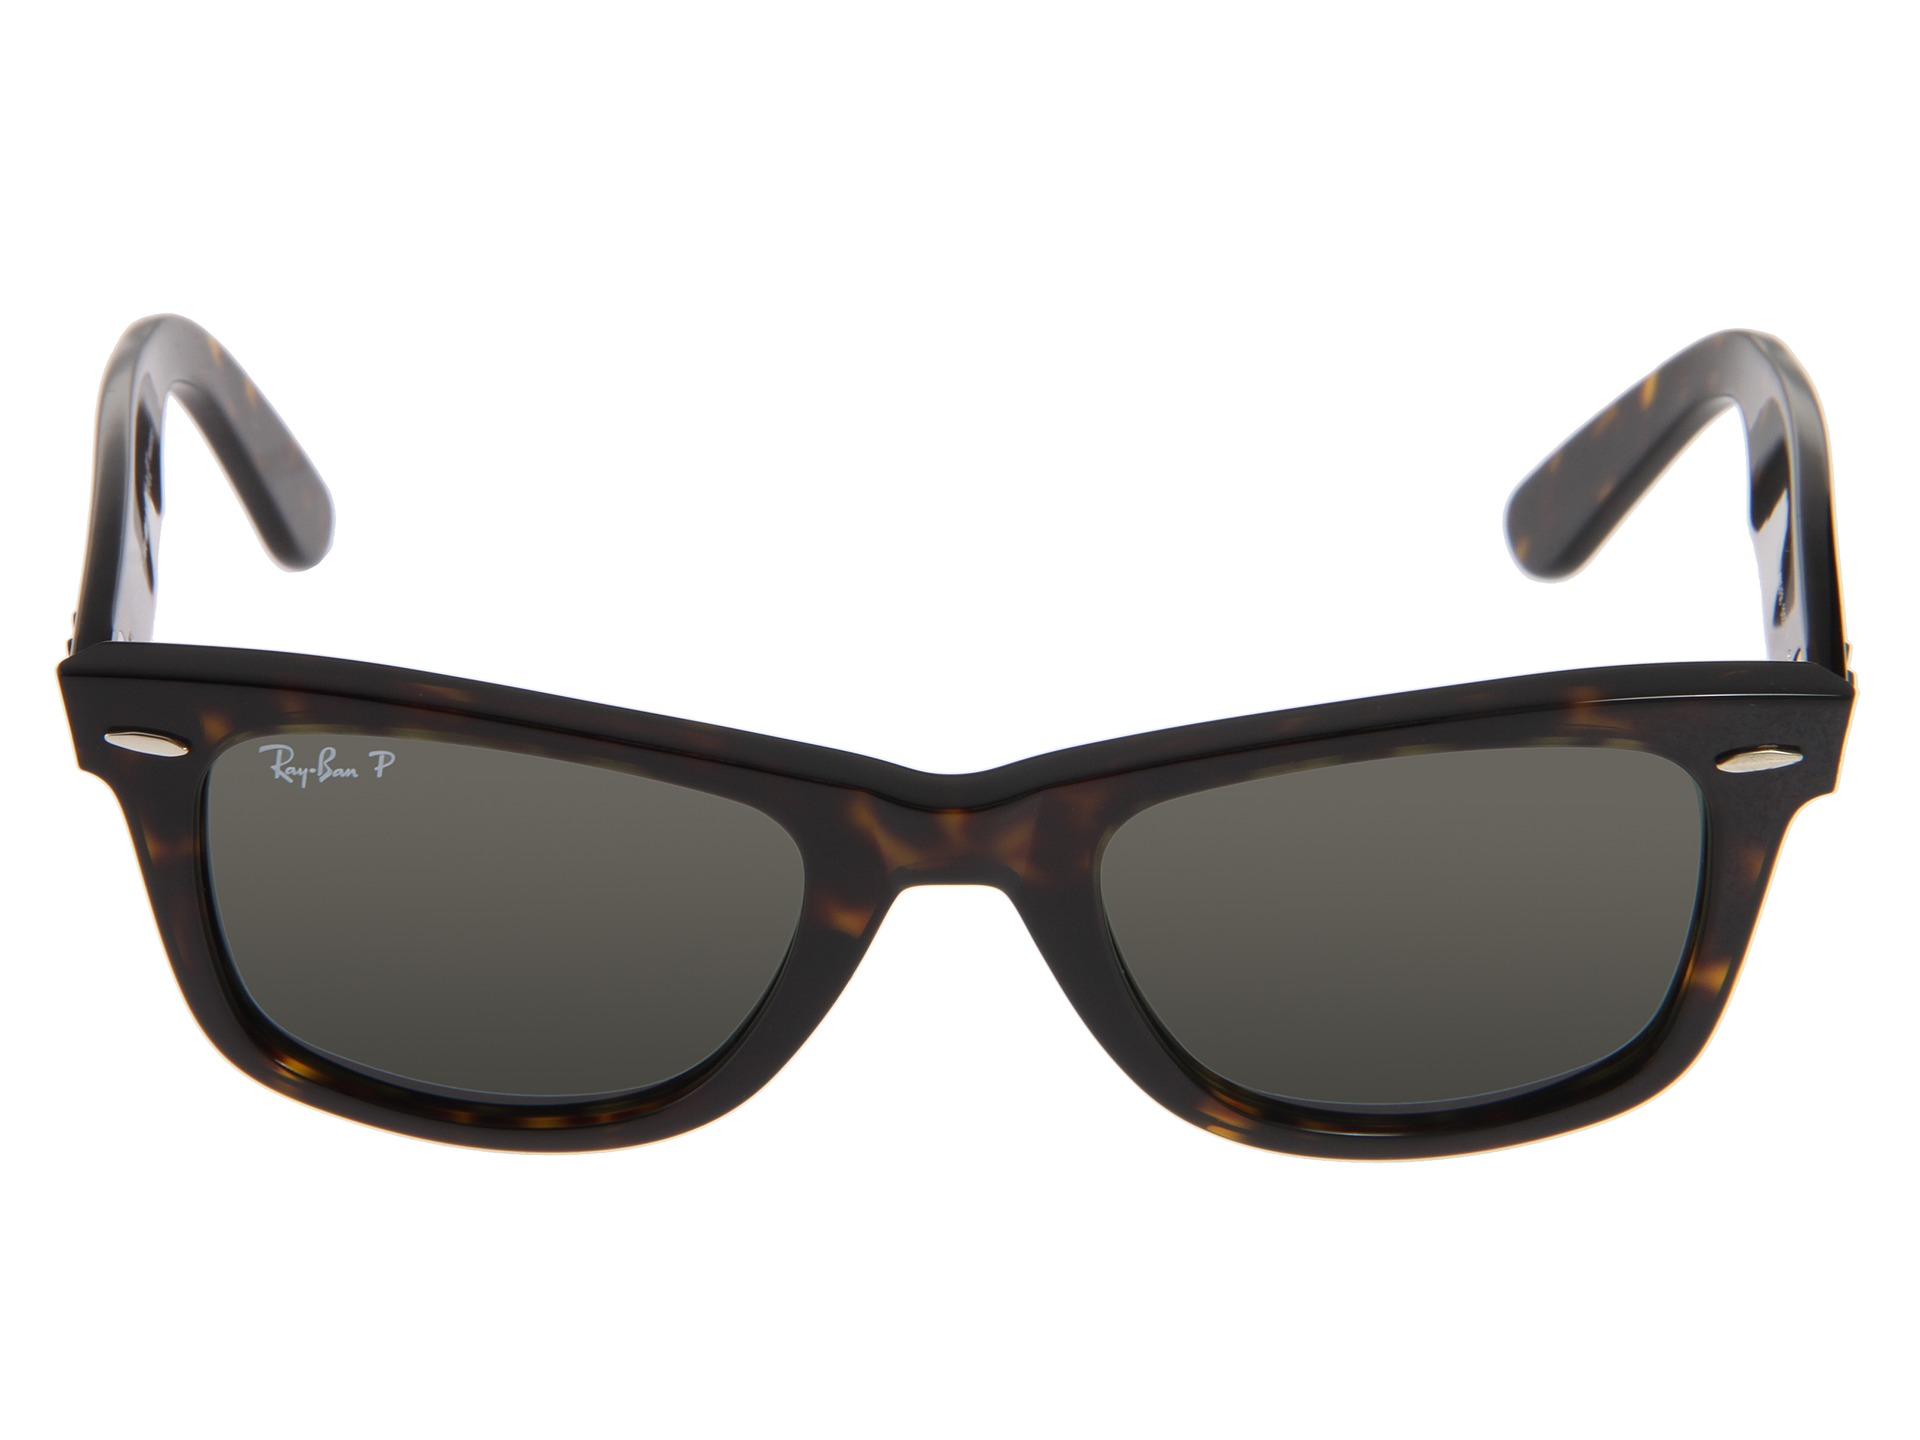 c90449ced9153 Ray Ban Rx Frames Made In China « Heritage Malta